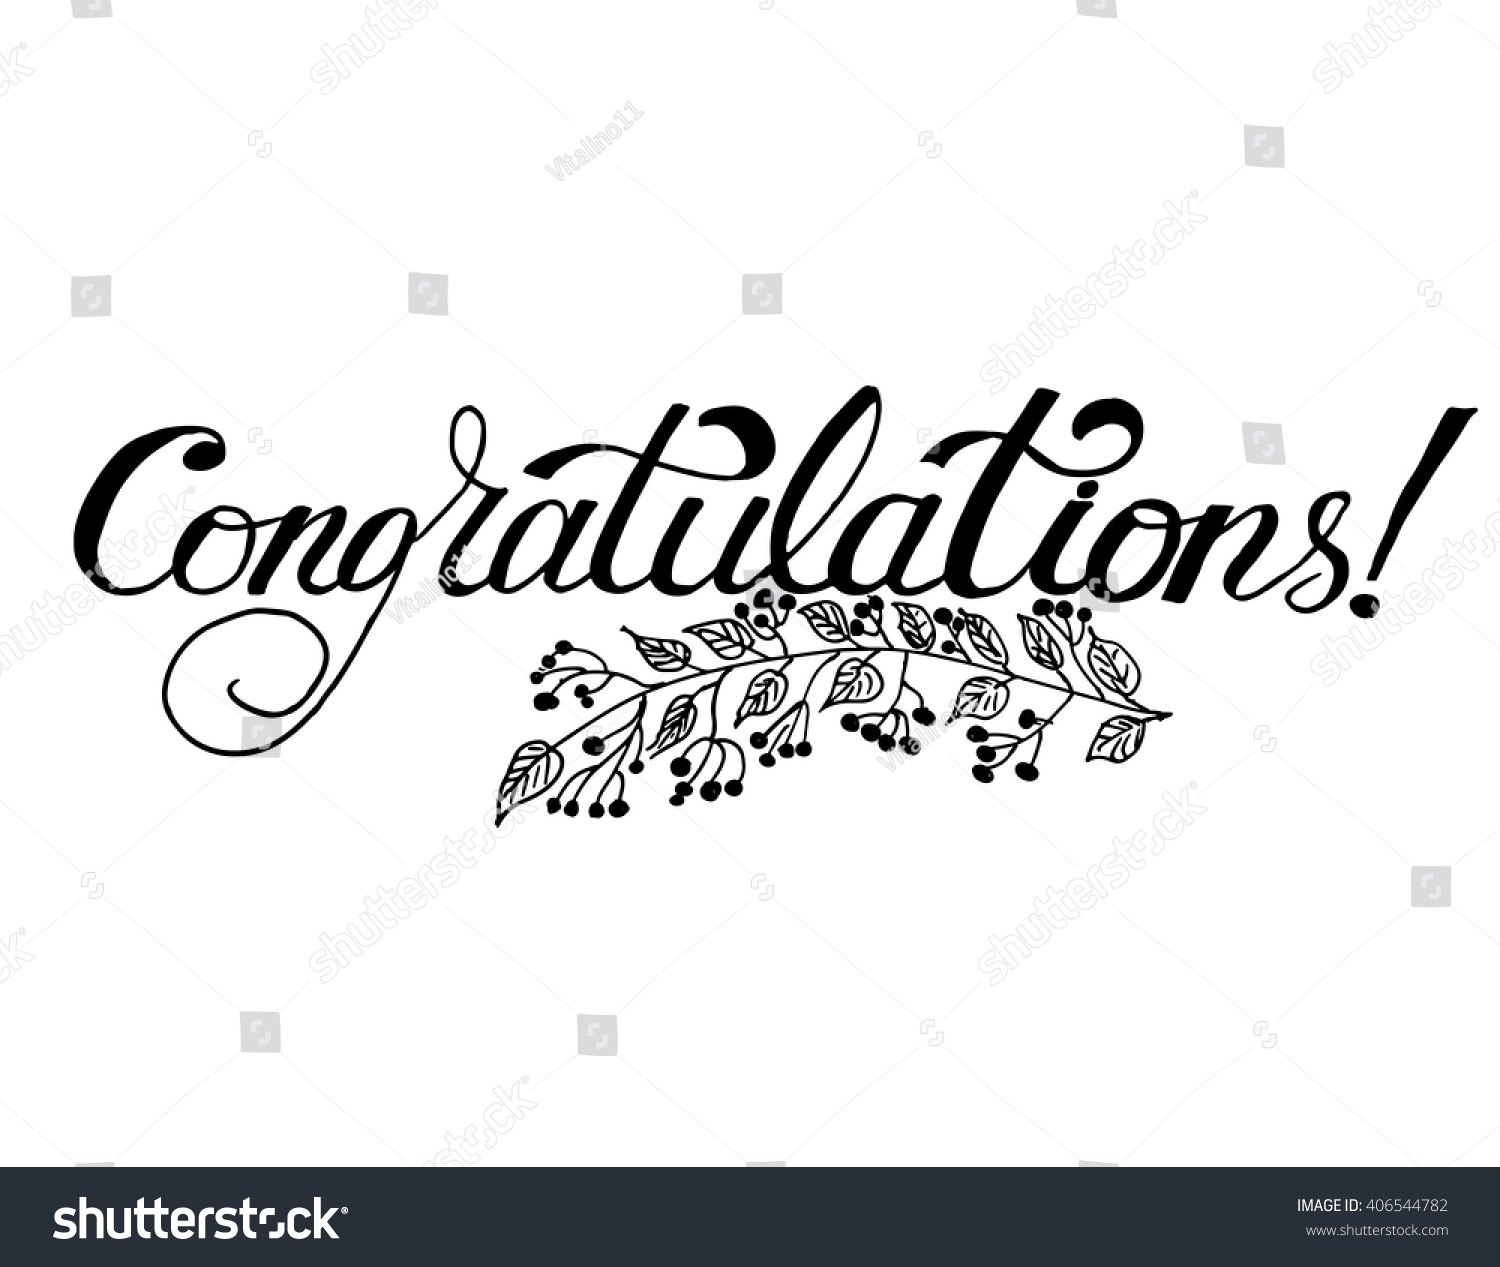 Congratulations hand lettering vector modern calligraphy